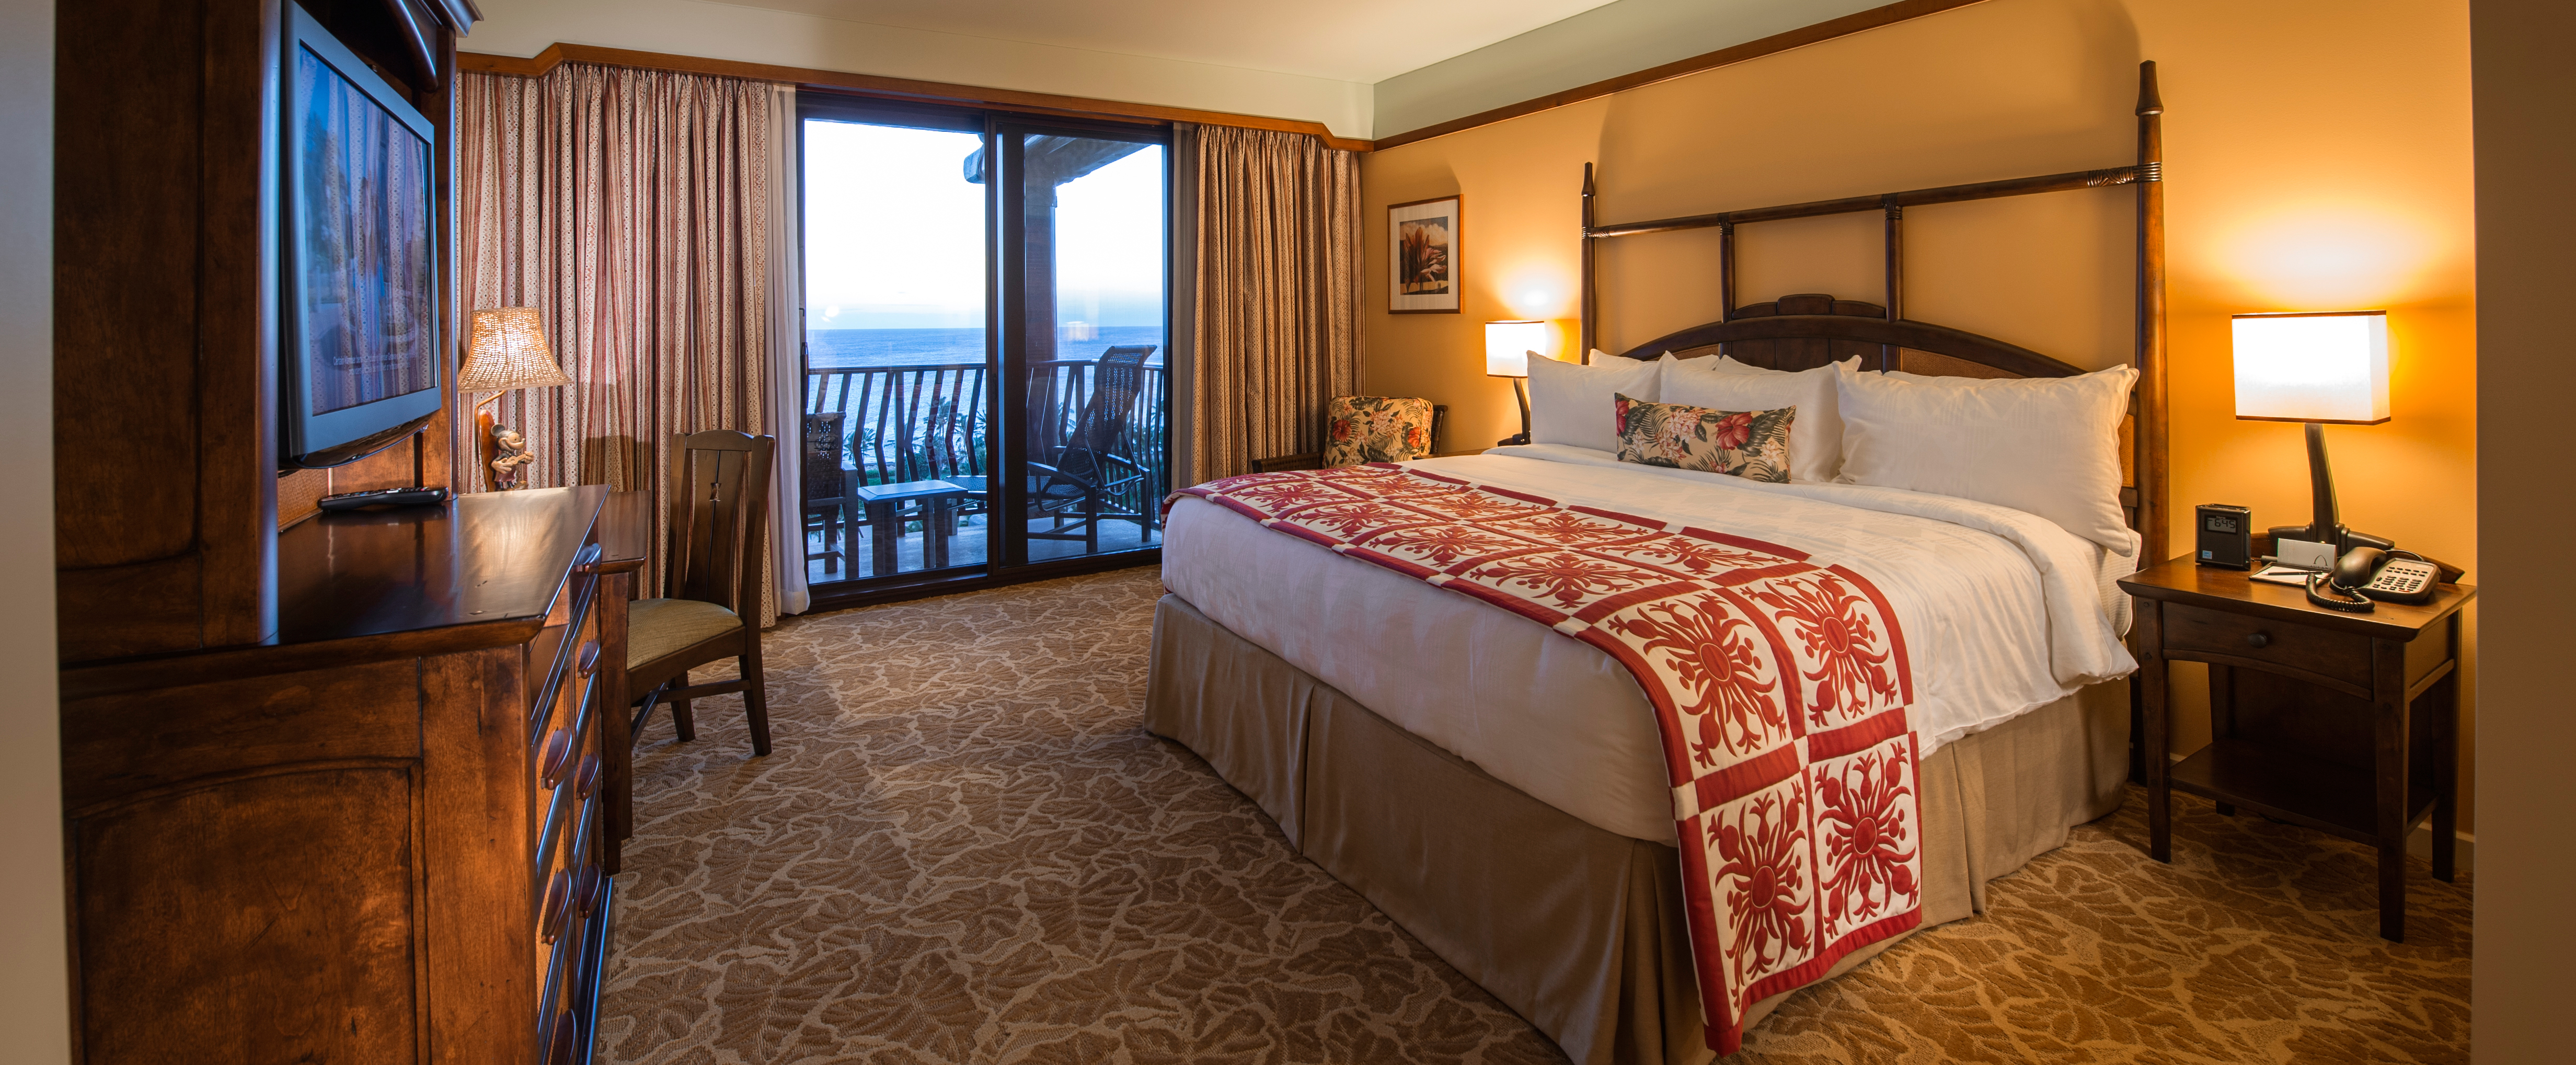 The master bedroom in the 3-Bedroom Grand Villa at Aulani